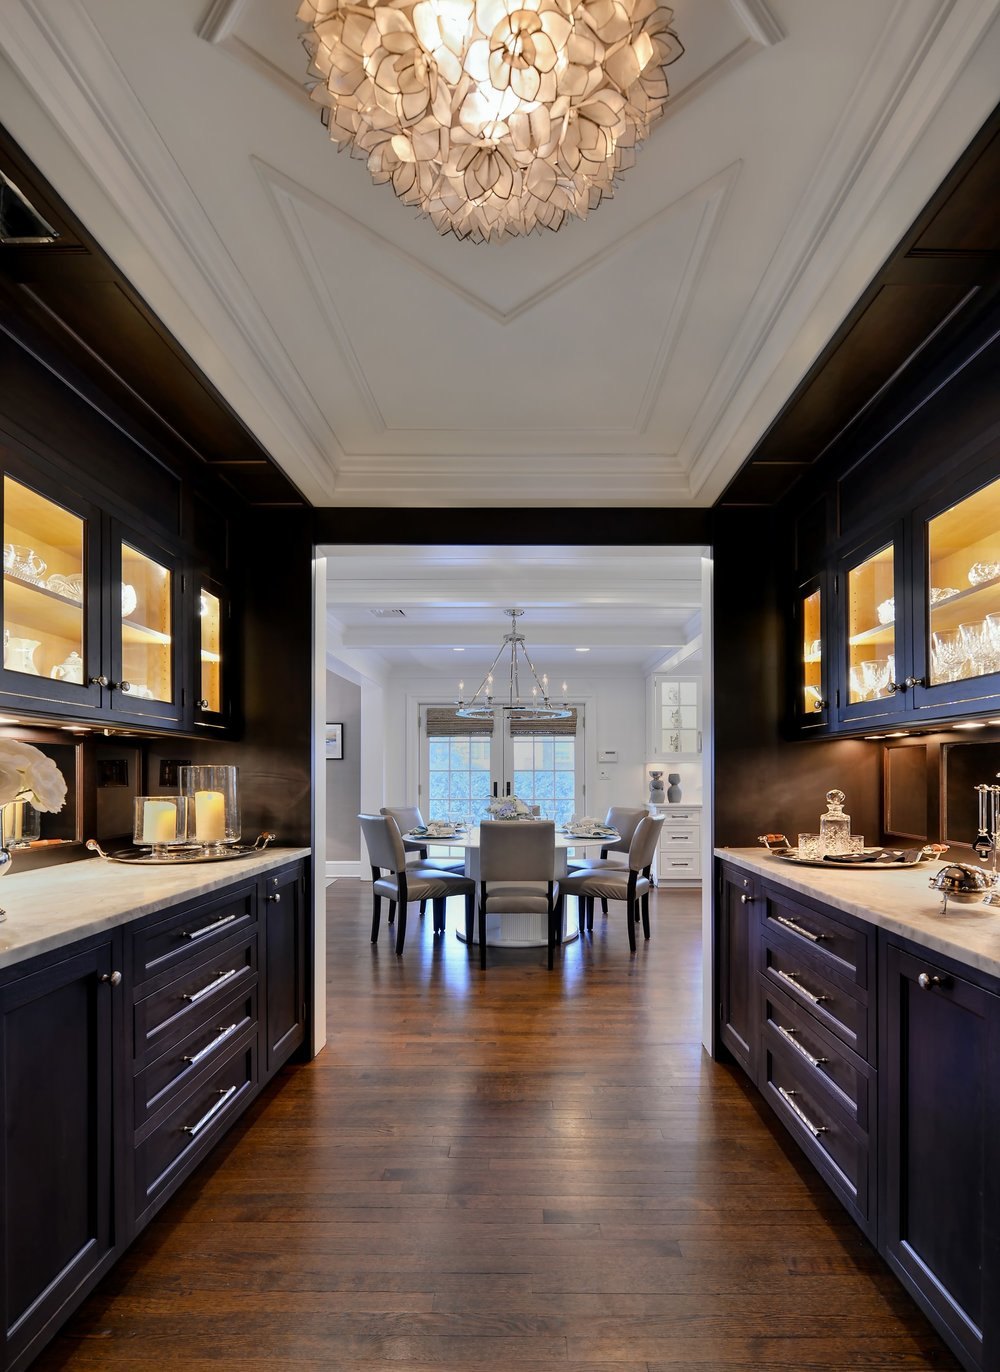 Transitional style kitchen with wine glass cabinets and drawers